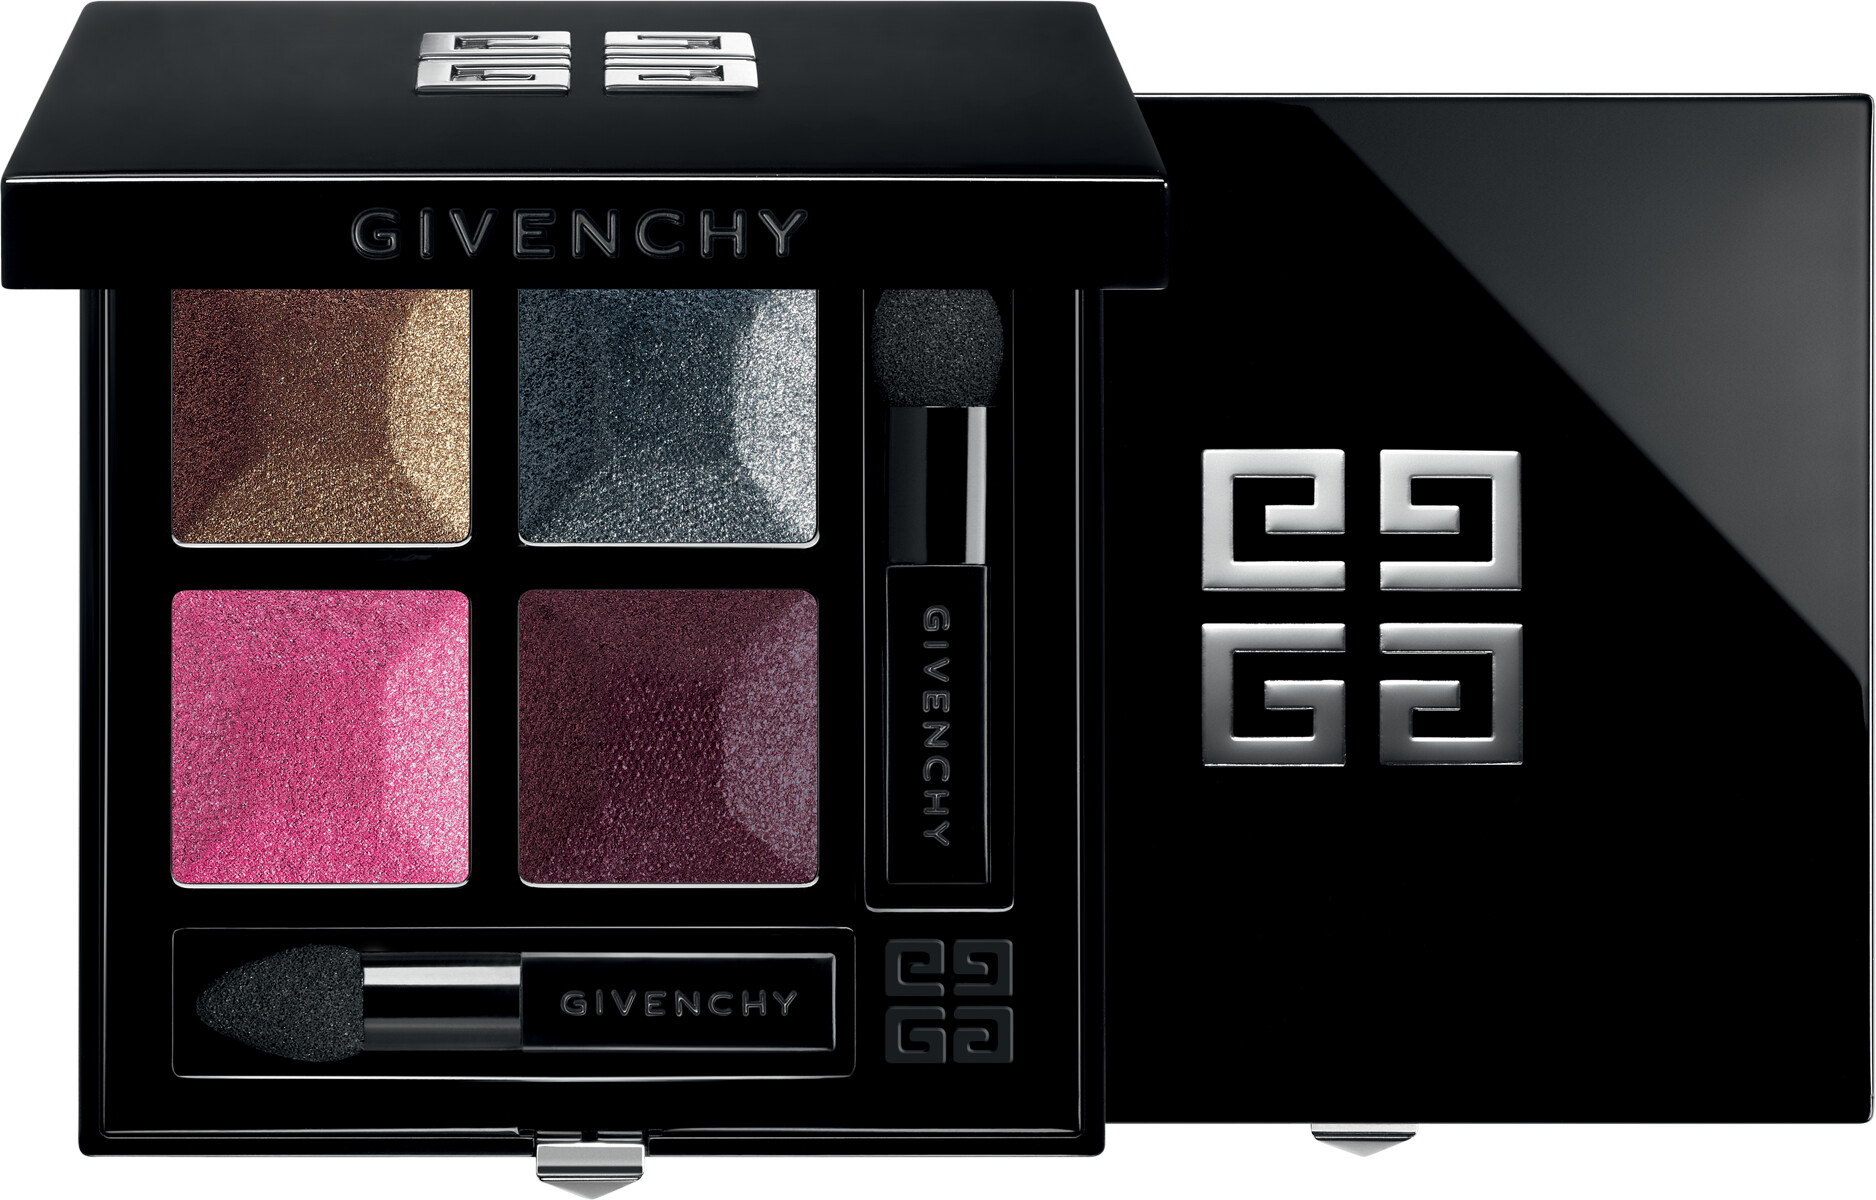 GIVENCHY Prisme Quatuor  Intense & Radiant Eyeshadow 4 Colors 4g 03  Inattendue